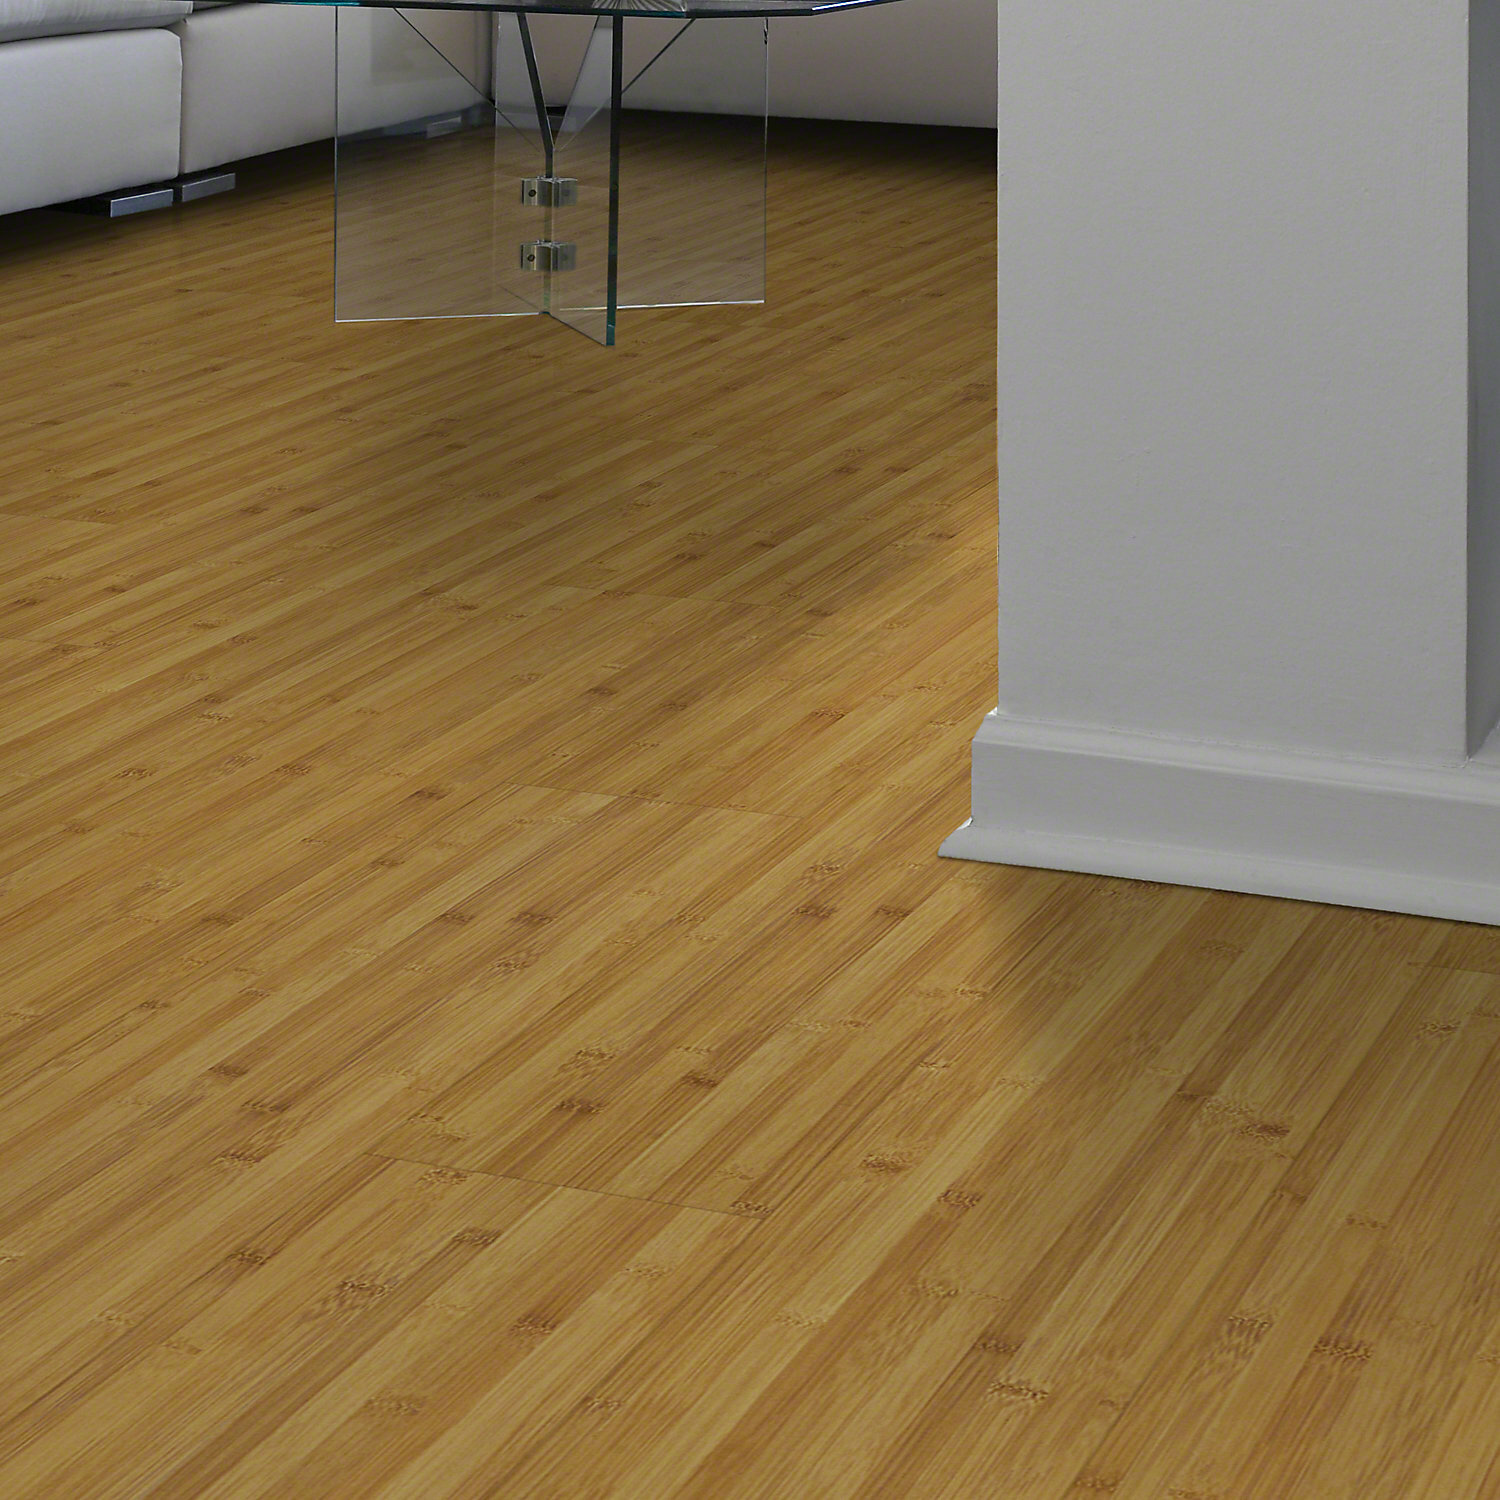 "Shaw Floors Rosswood 8"" x 48"" x 7 94mm Bamboo Laminate Flooring in"